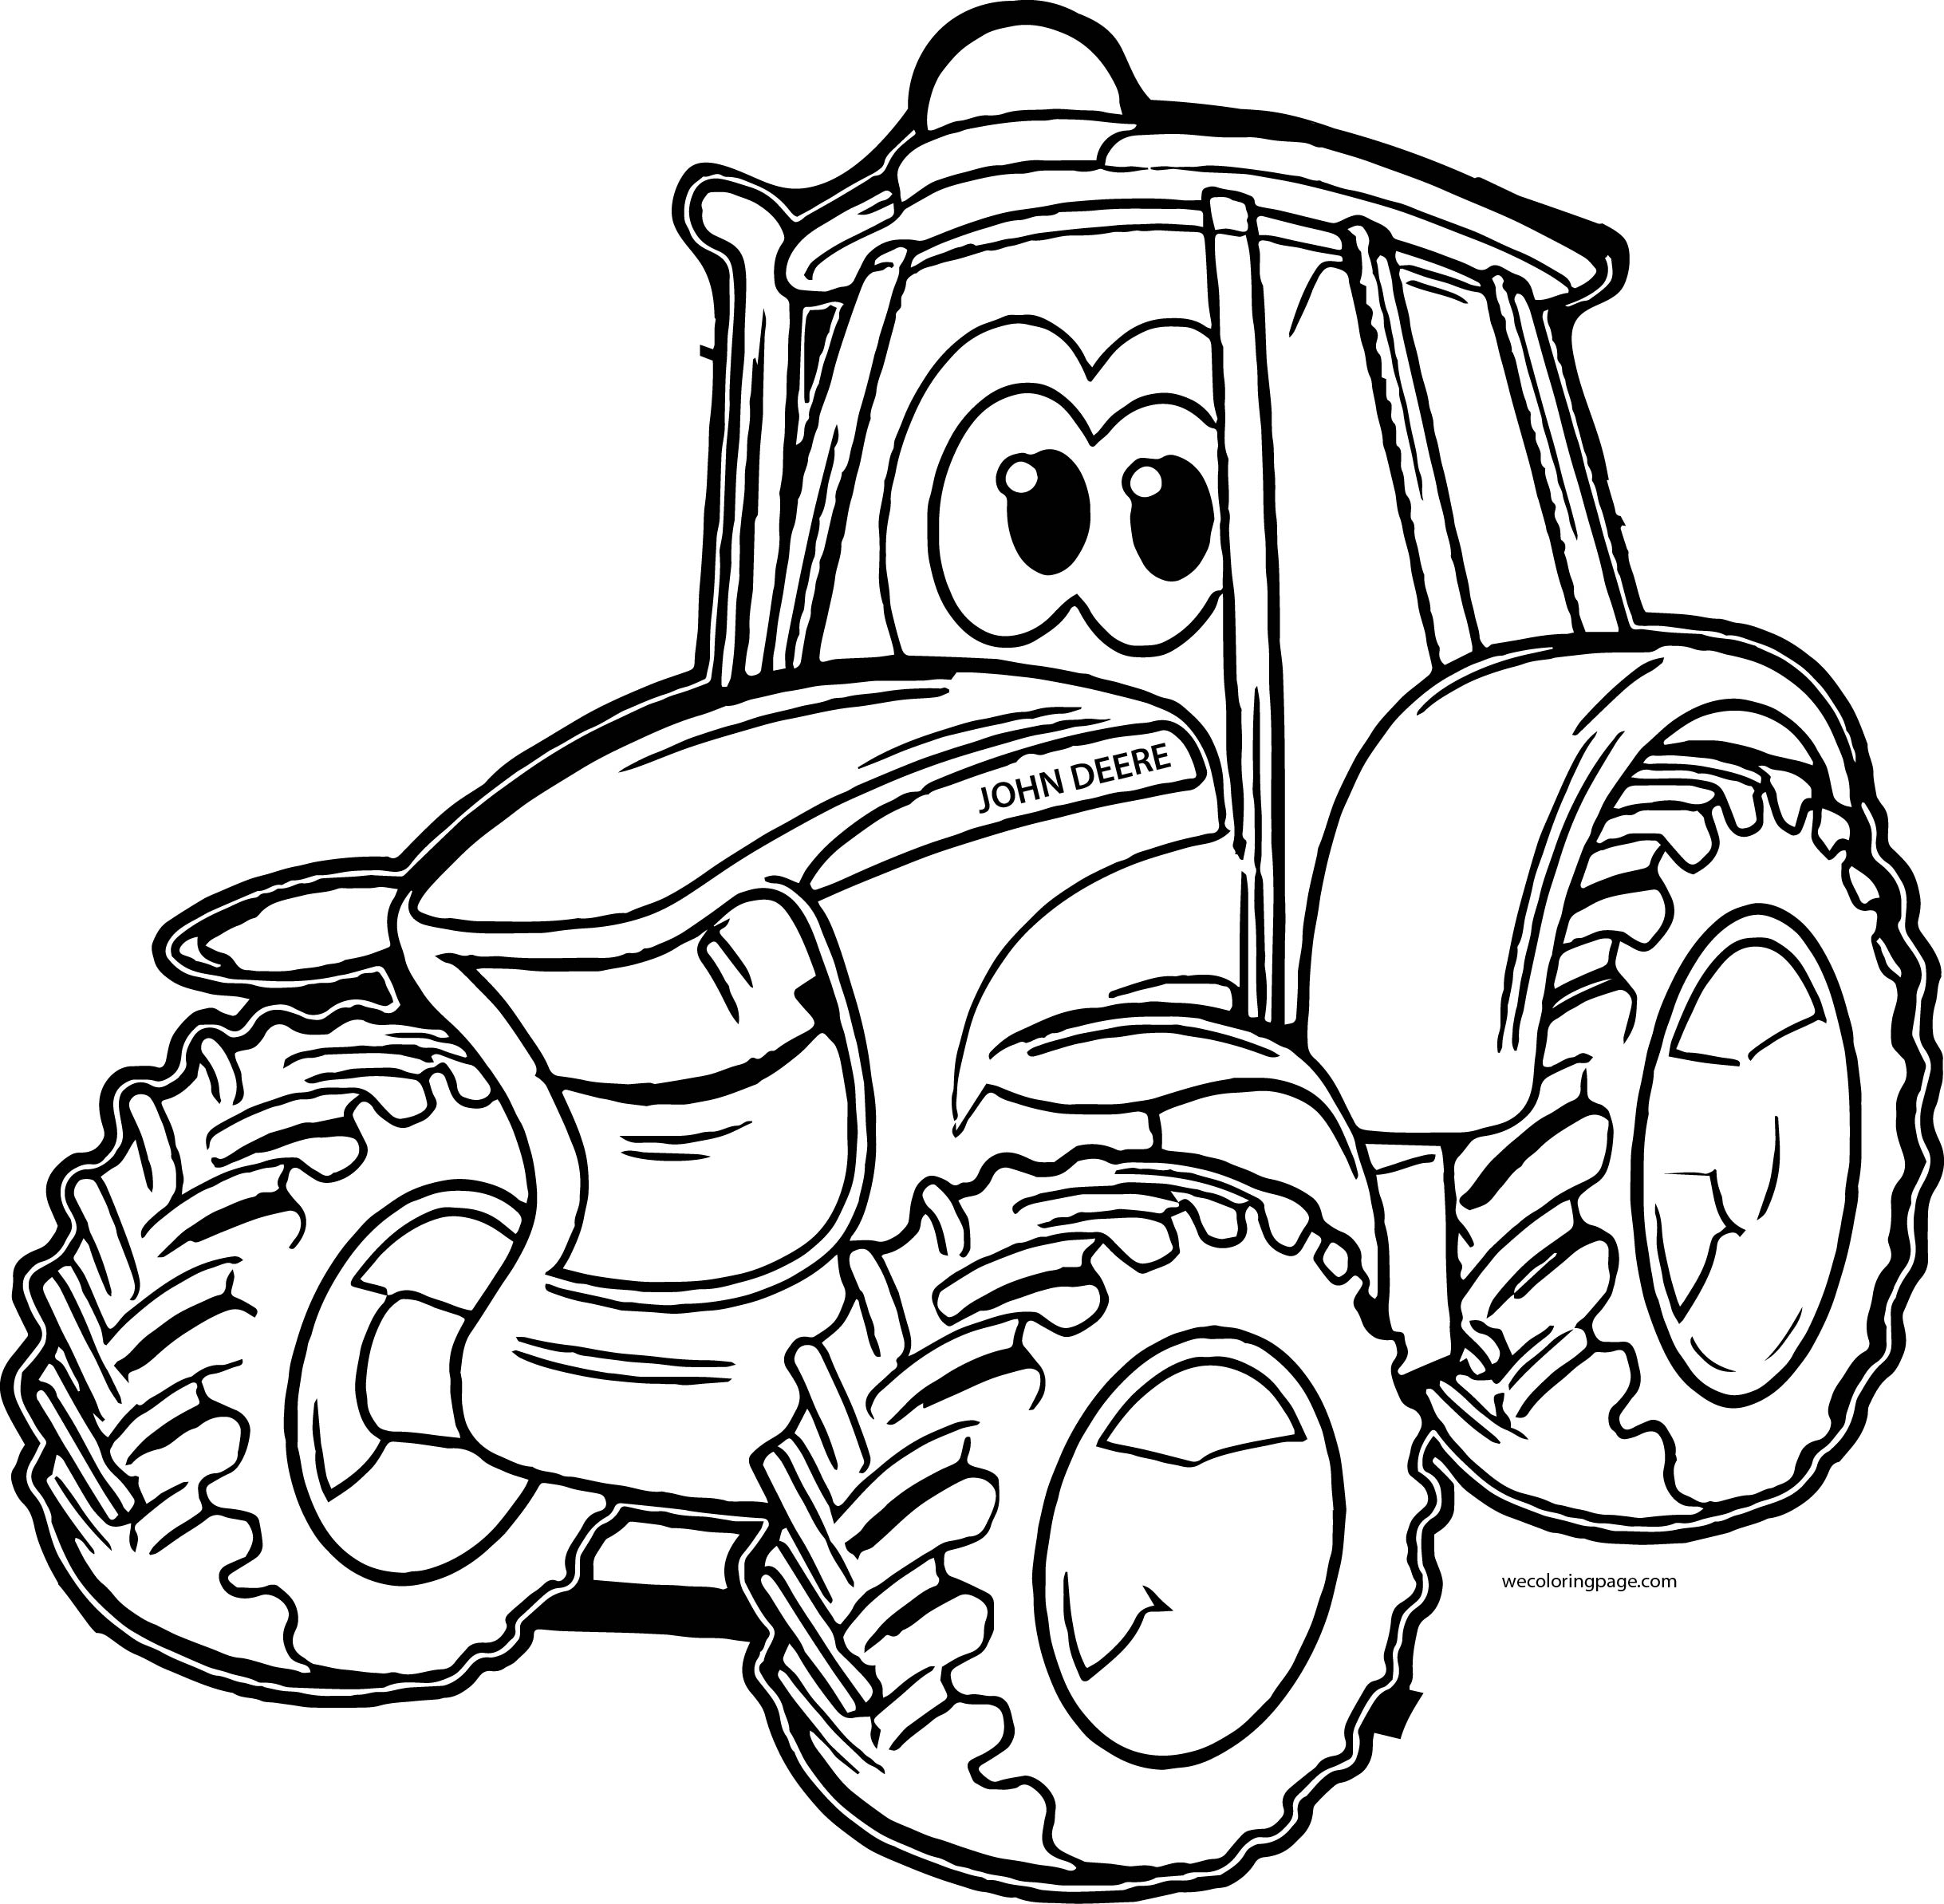 2437x2387 Tractor Coloring Page Endorsed Pages John Deere Color Tractor